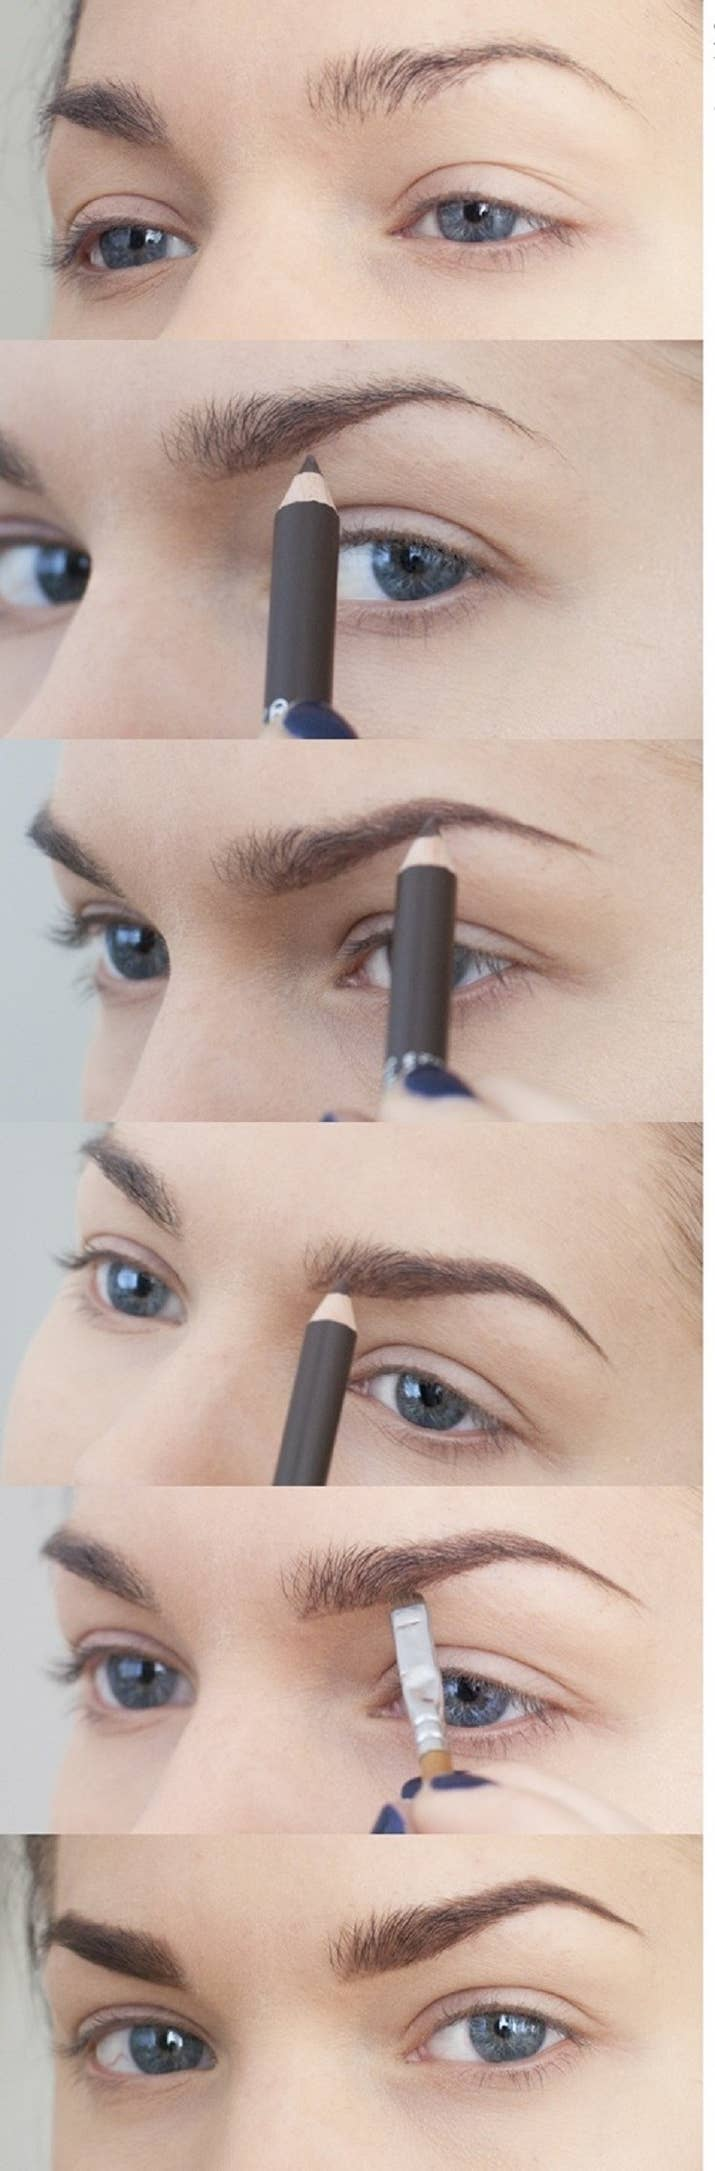 16 eyebrow diagrams that will explain everything to you 12 fill in thin brows with a pencil or use brow powder and a brush geenschuldenfo Choice Image